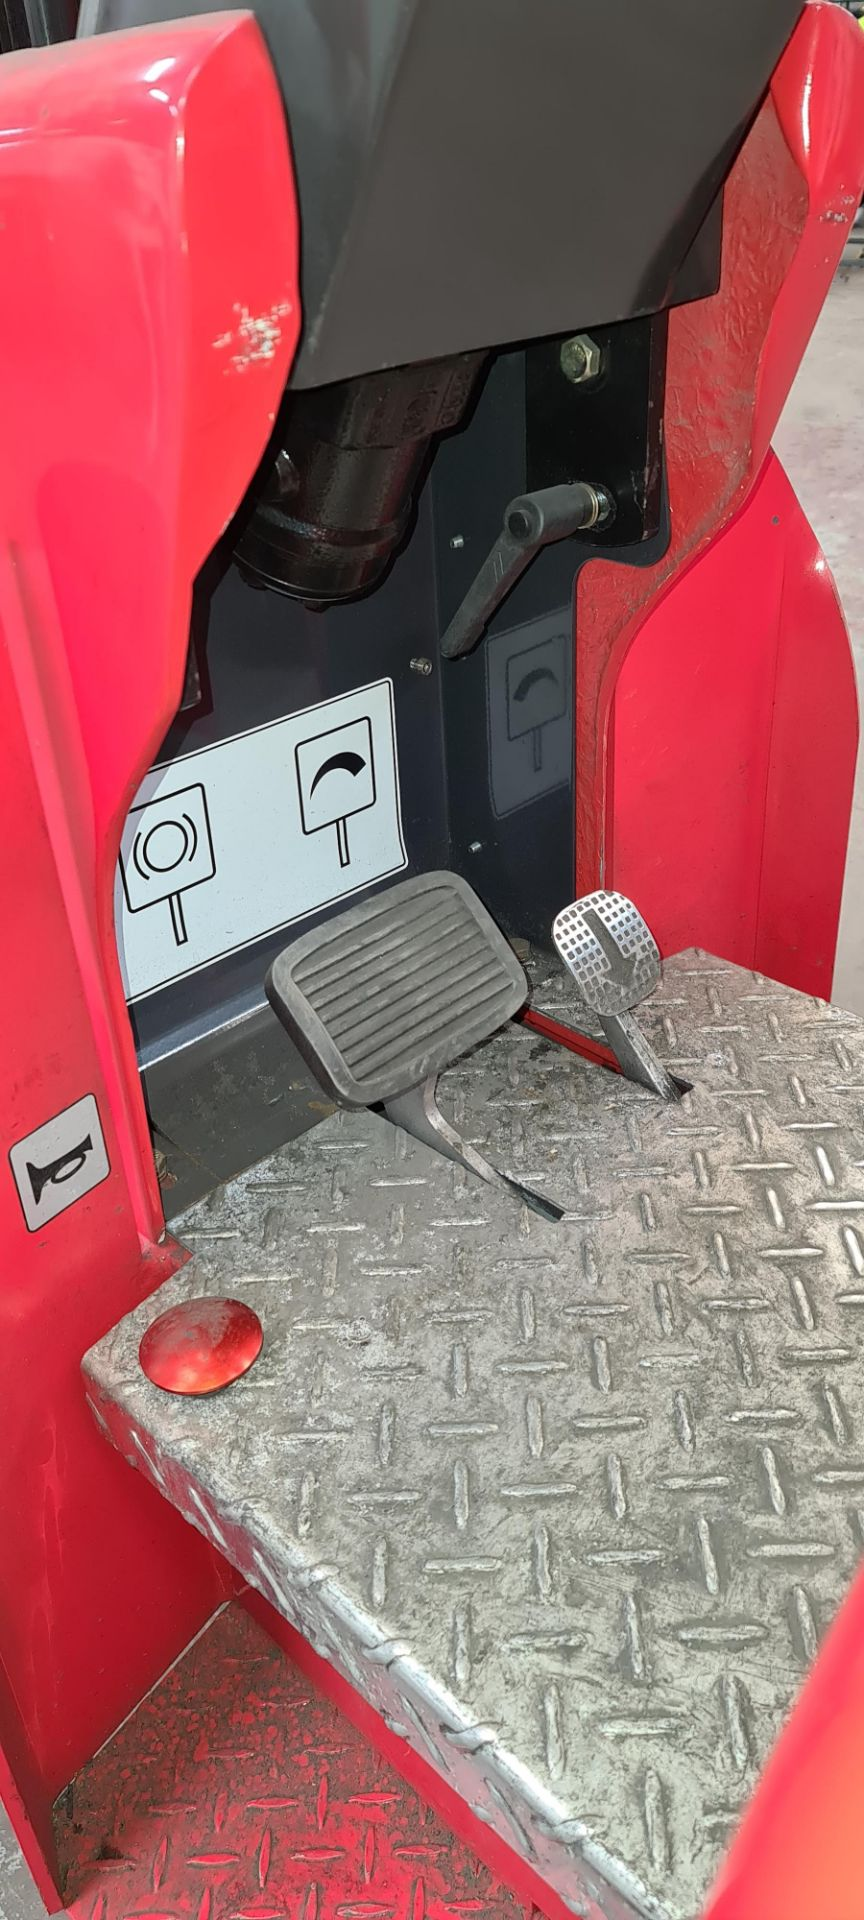 2014 Flexi Euro AC 'bendy' electric Fork Lift Truck - Image 21 of 29